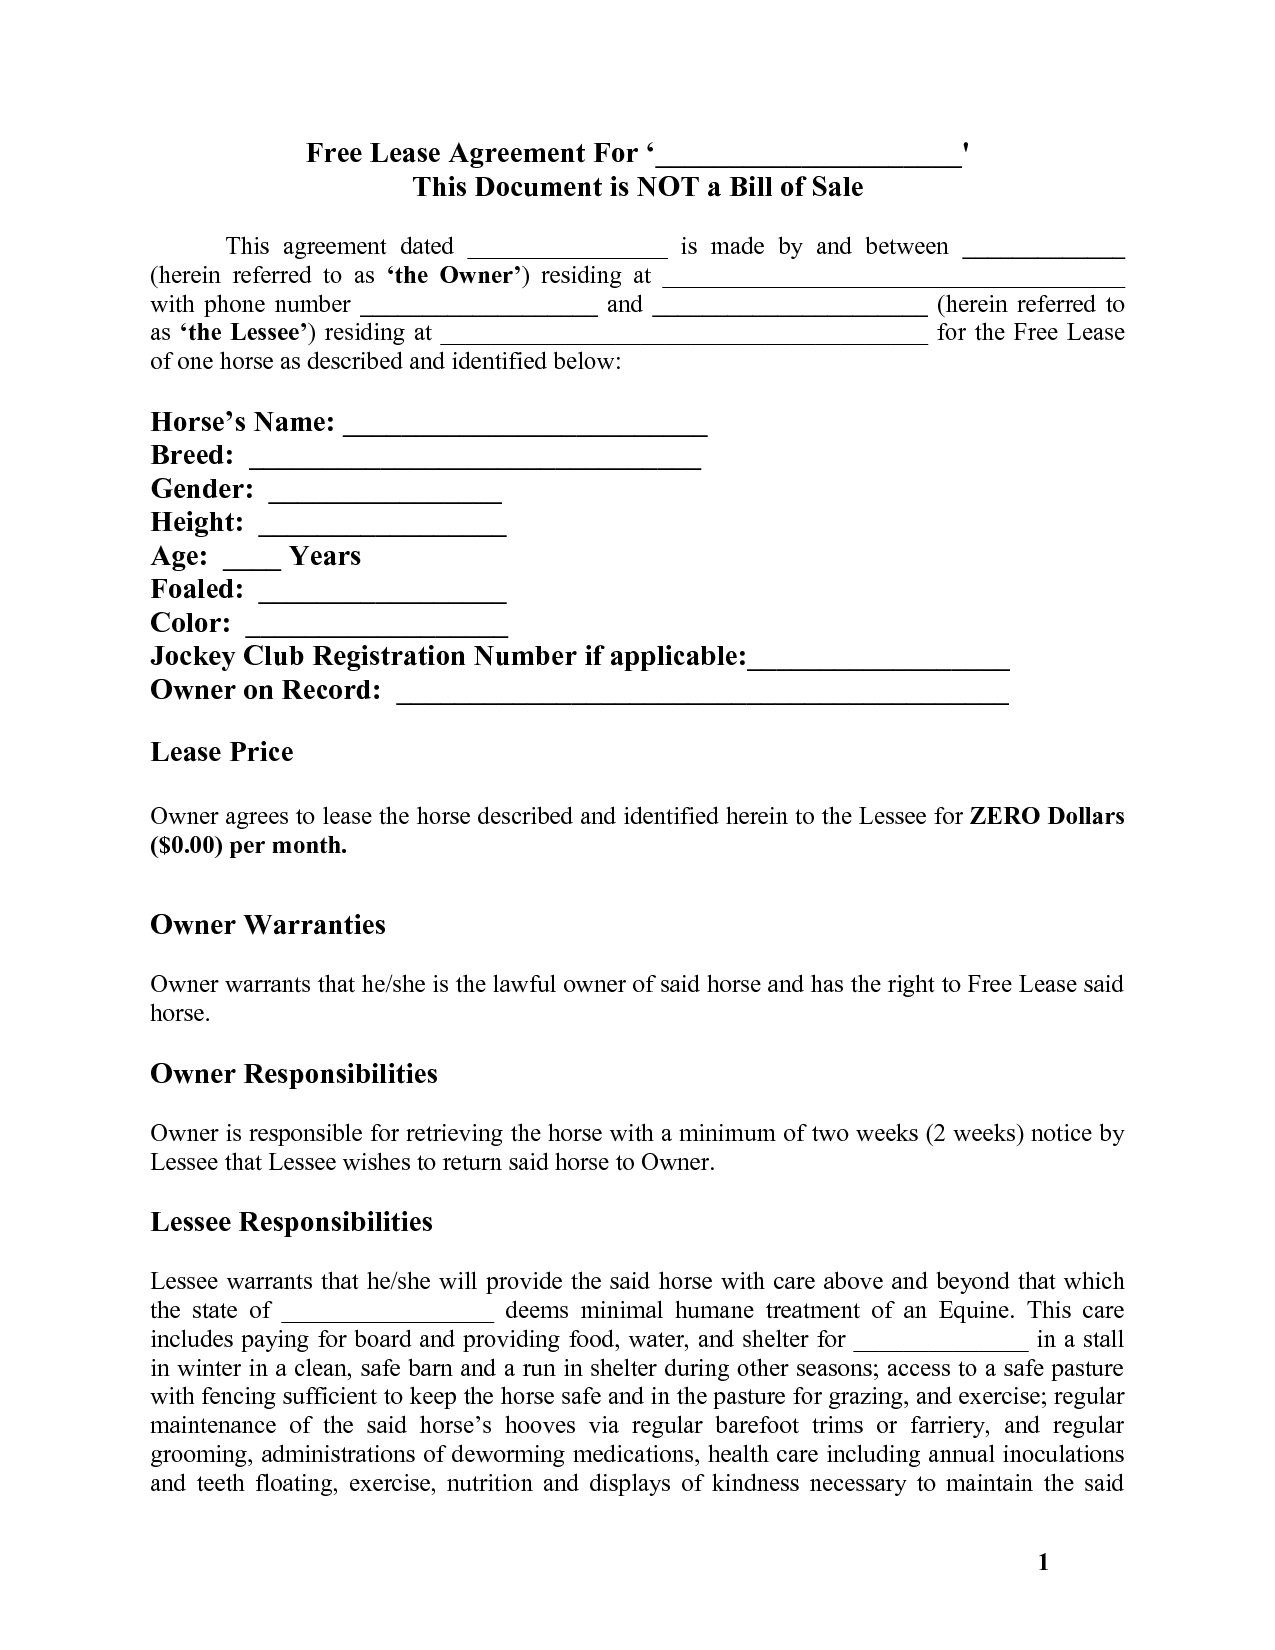 Horse Template Printable | Free Basic Lease Agreement | Country - Man In The Arena Free Printable